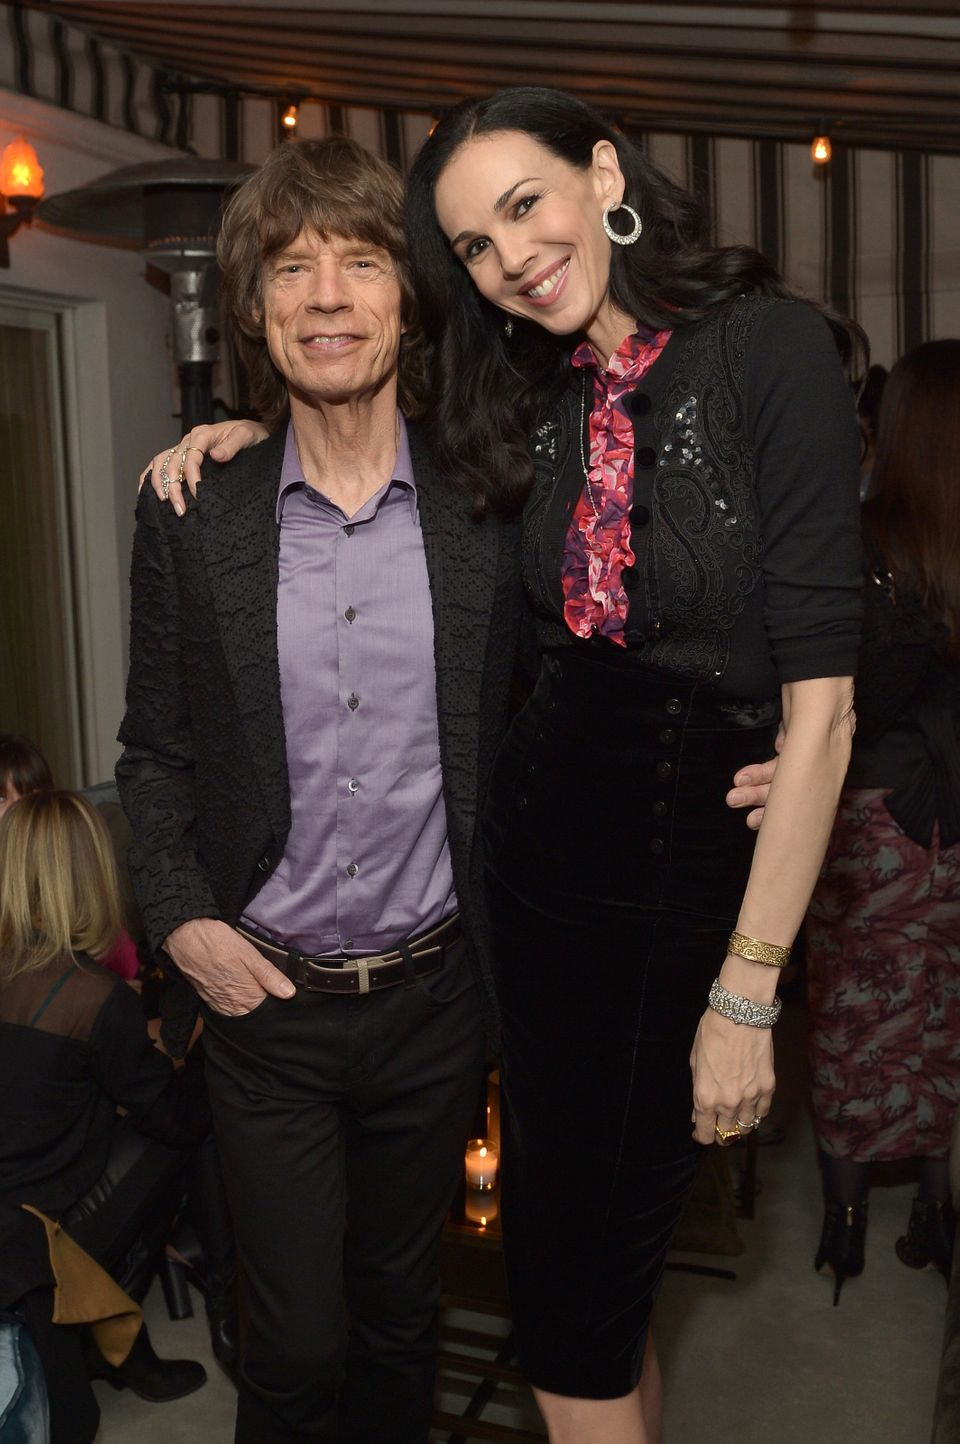 LOS ANGELES, CA - NOVEMBER 19:  Singer Mick Jagger and fashion designer L'Wren Scott attend the launch celebration of the Ban